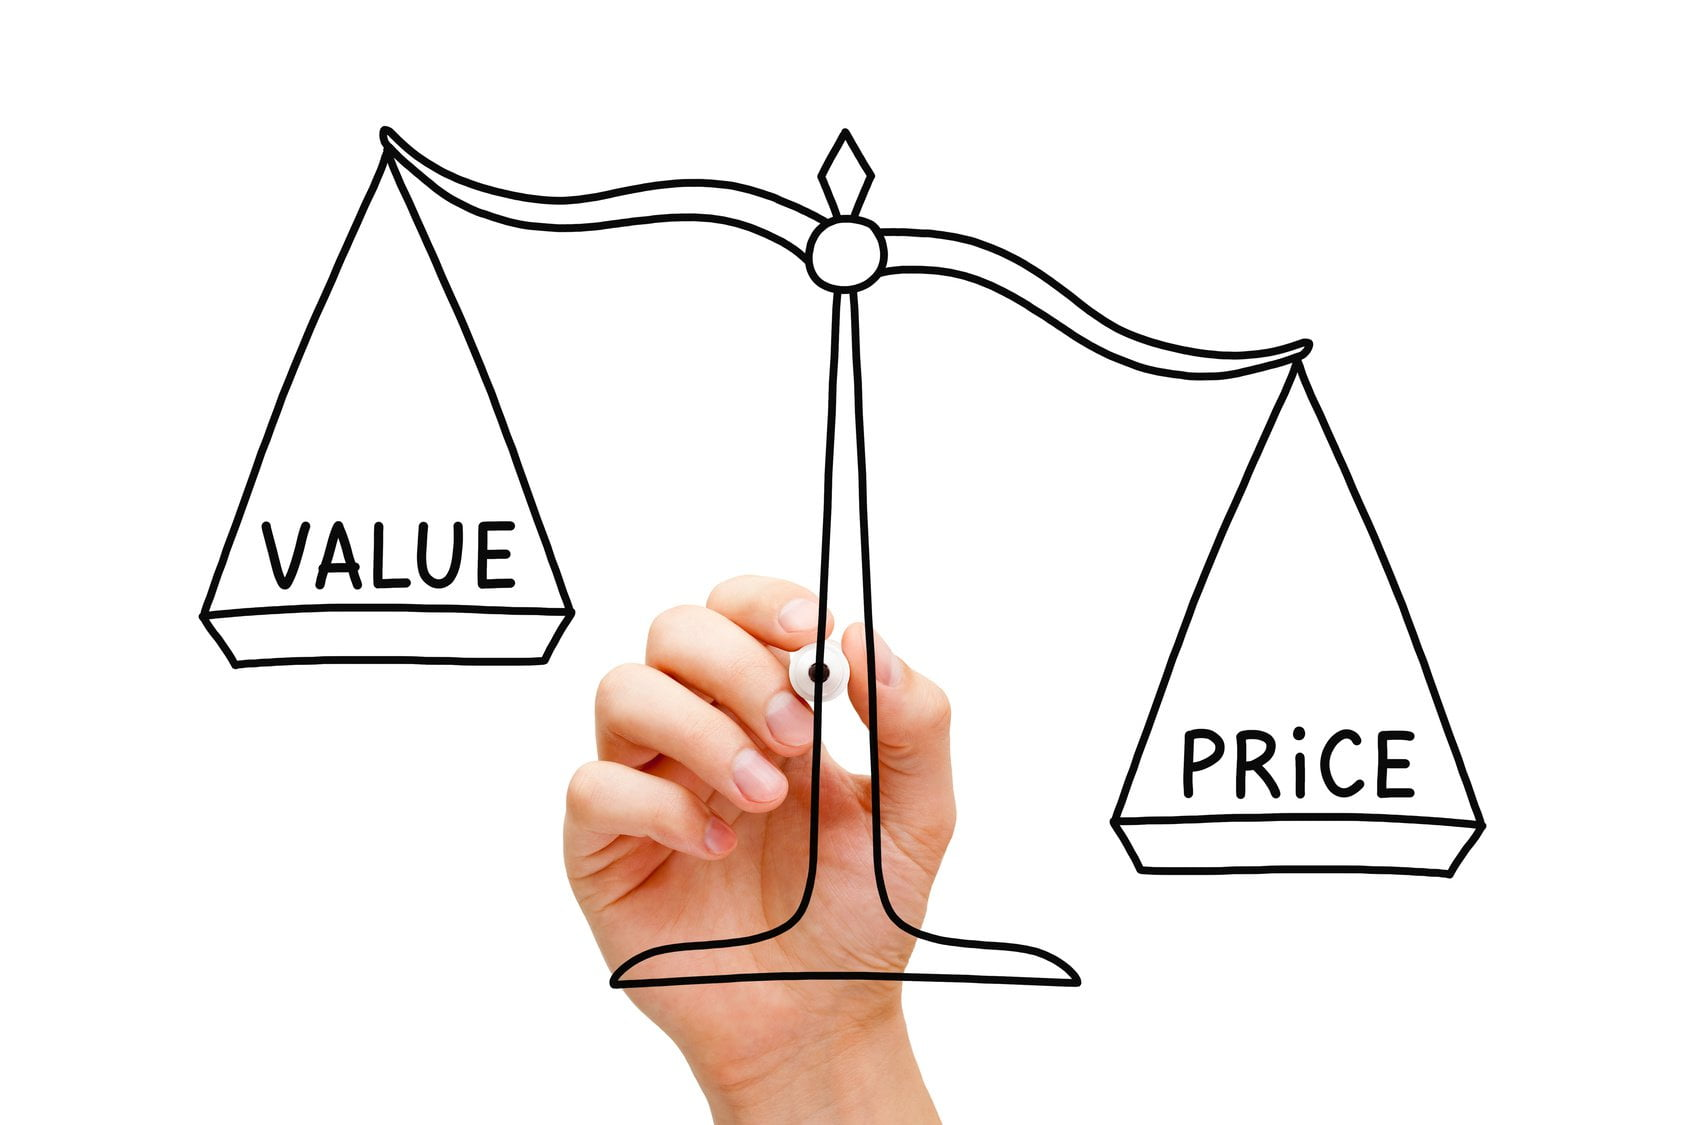 How to Sell Value Over Price: The Secret to Successful Value-Based Selling